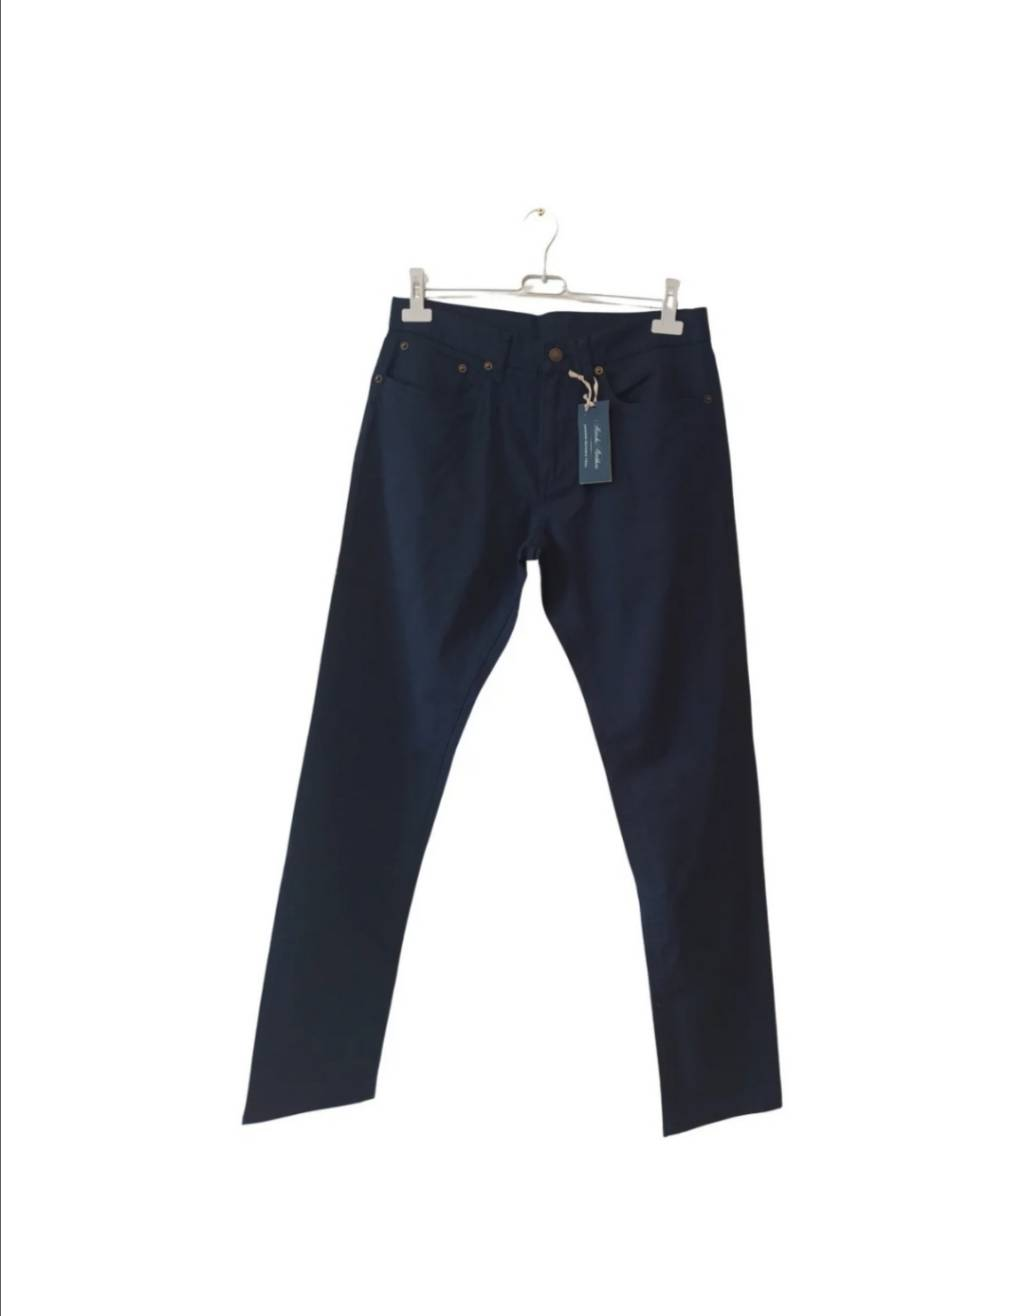 Brooks Brothers Trousers. Other5